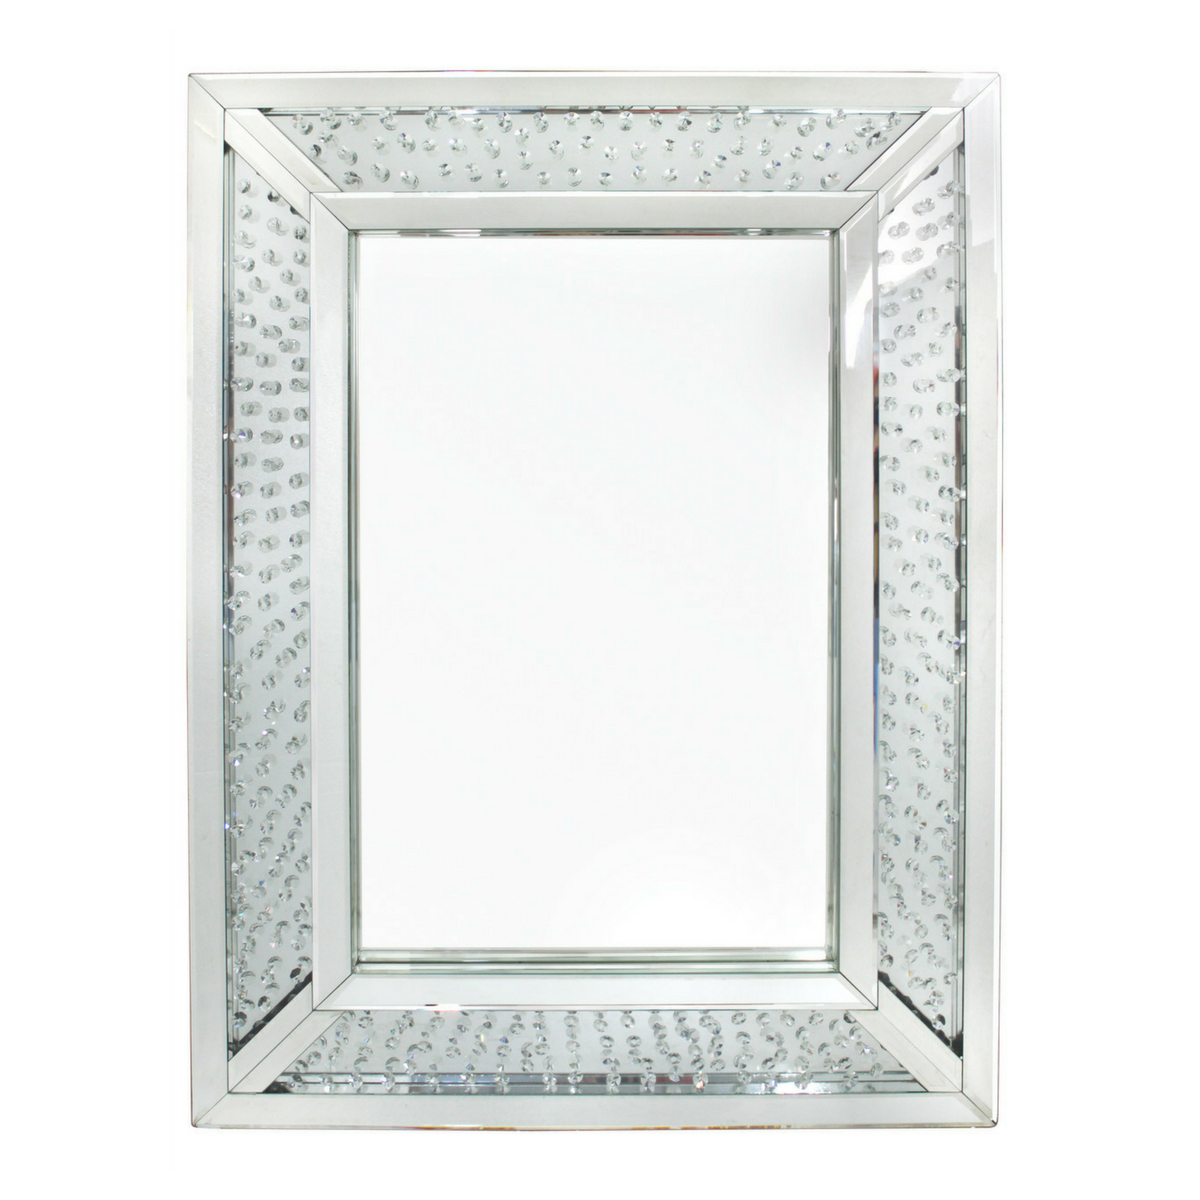 Astoria Wall Mirror Throughout 2019 Crystal Wall Mirrors (View 5 of 20)